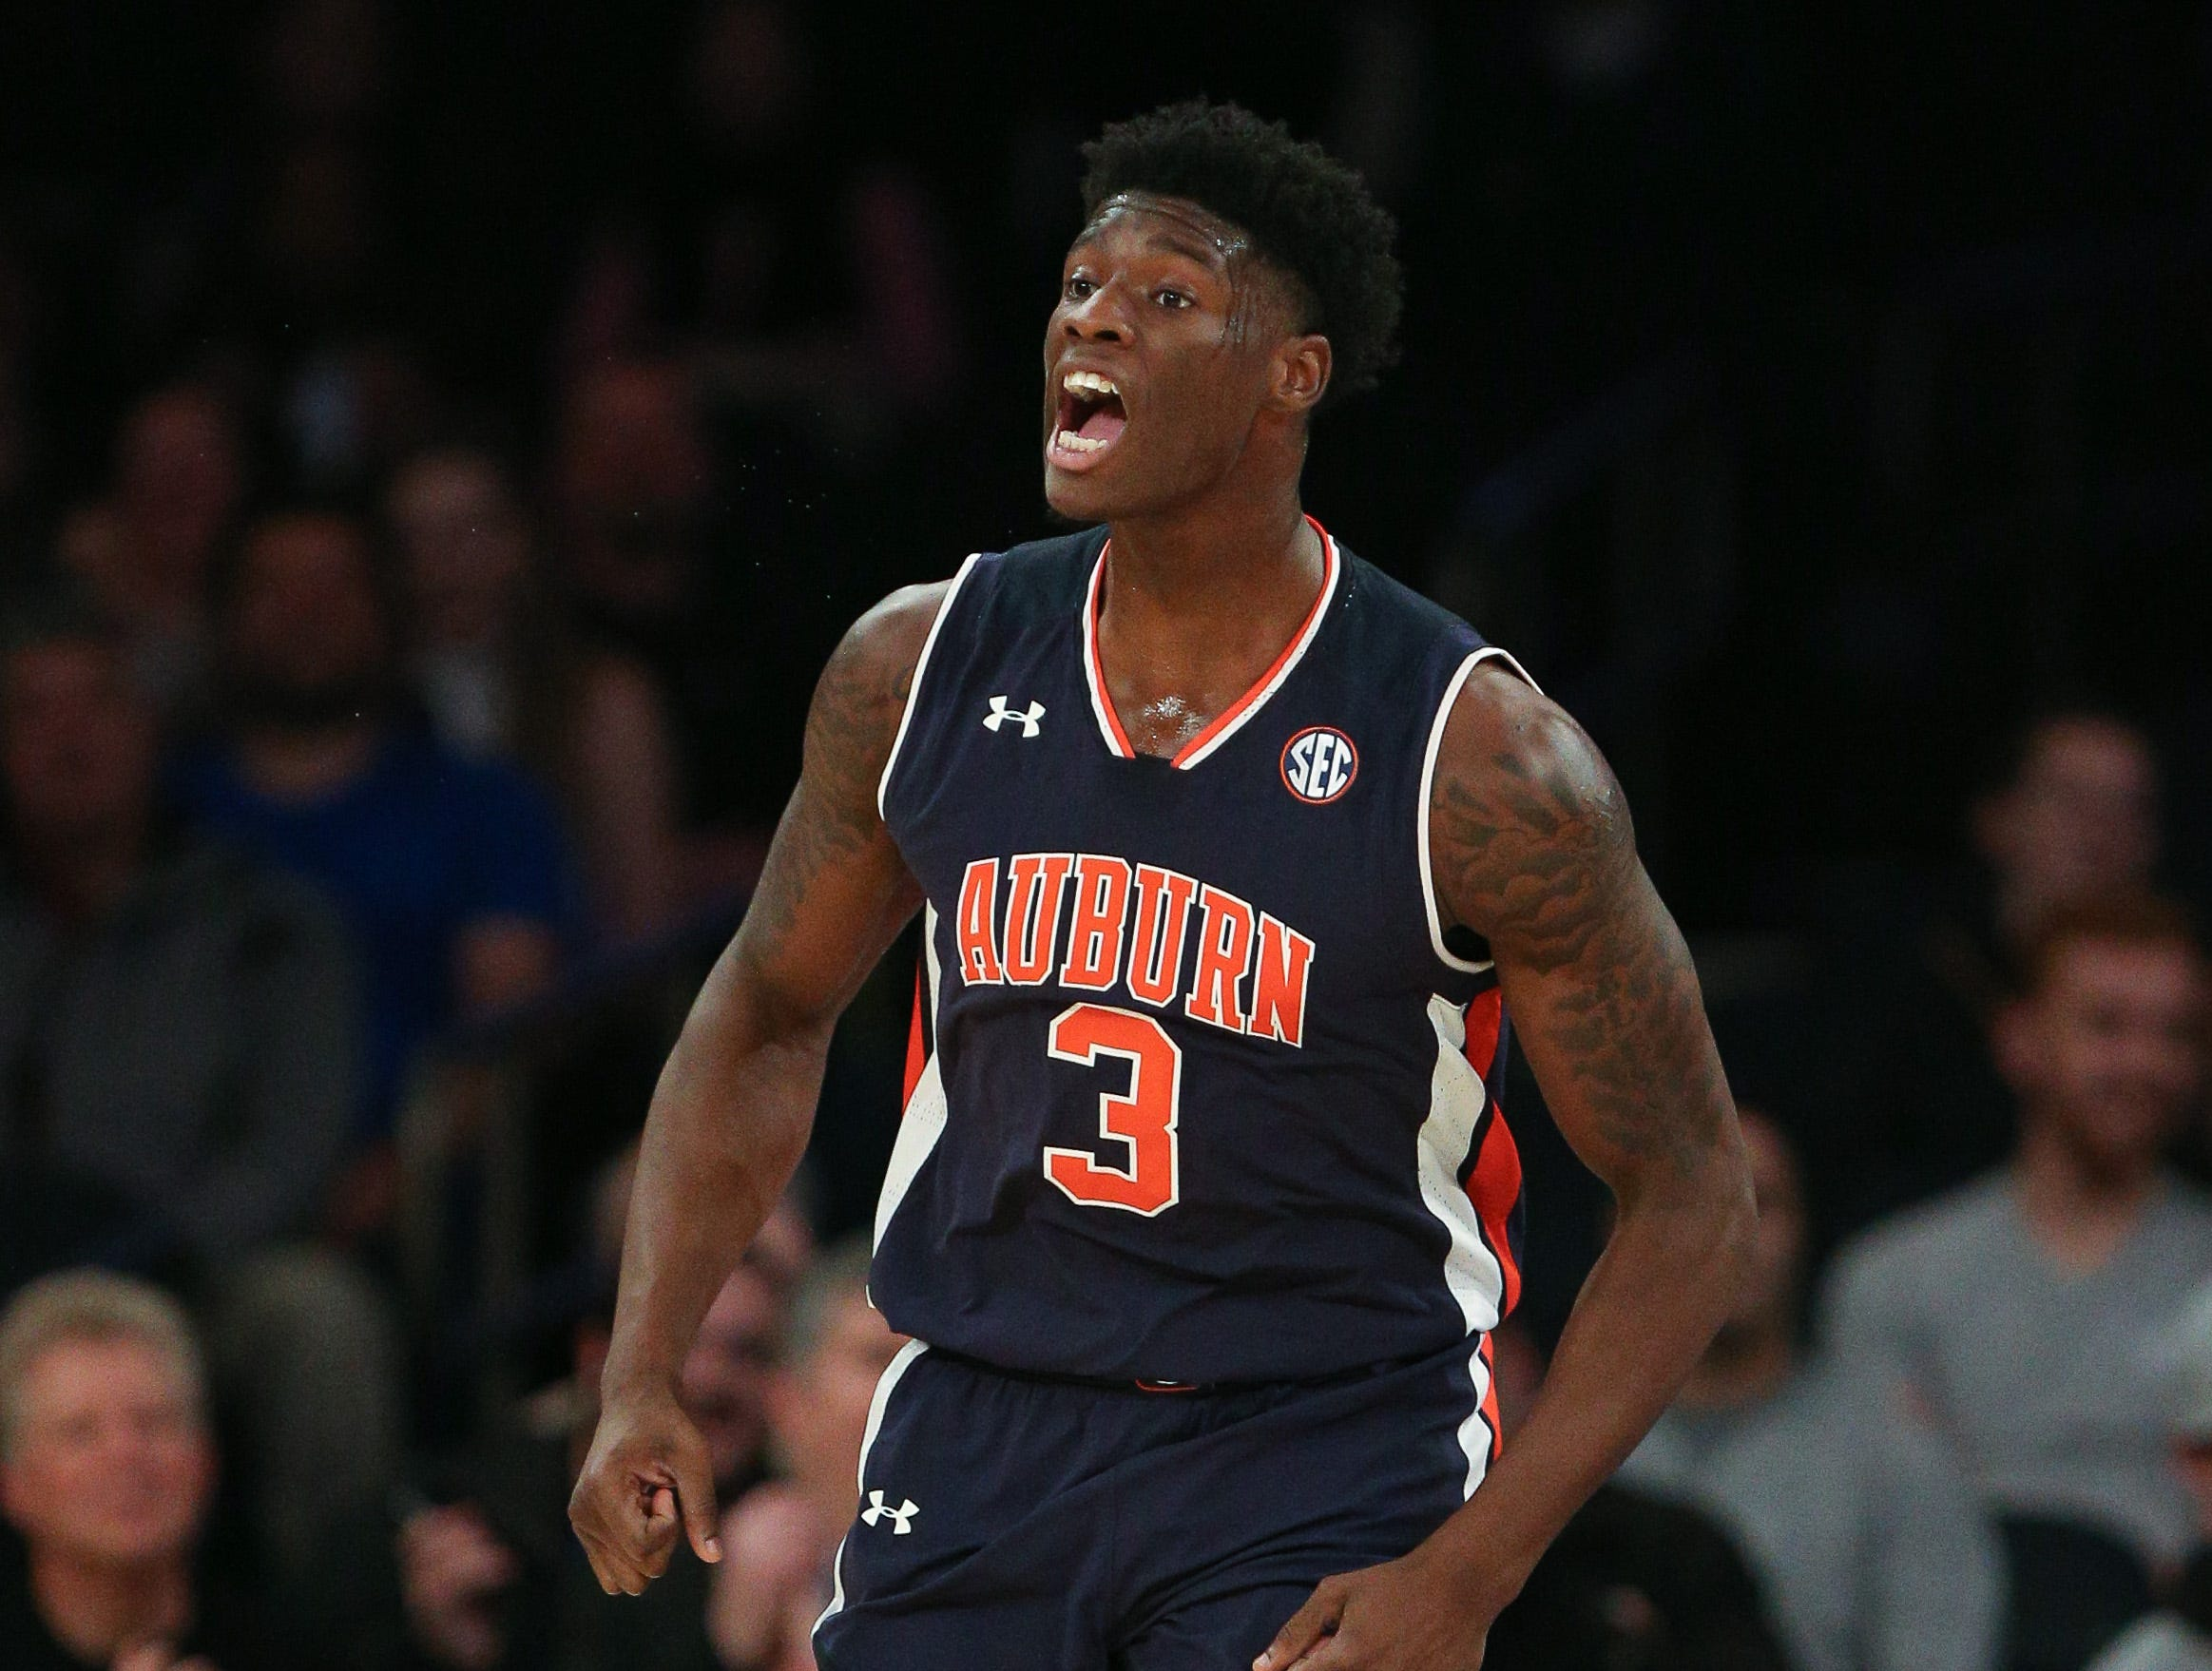 Dec 12, 2016; New York, NY, USA;  Auburn Tigers forward Danjel Purifoy (3) celebrates after a basket against the Boston College Eagles during the first half of the first game of the Under Armour Reunion at Madison Square Garden. Mandatory Credit: Vincent Carchietta-USA TODAY Sports